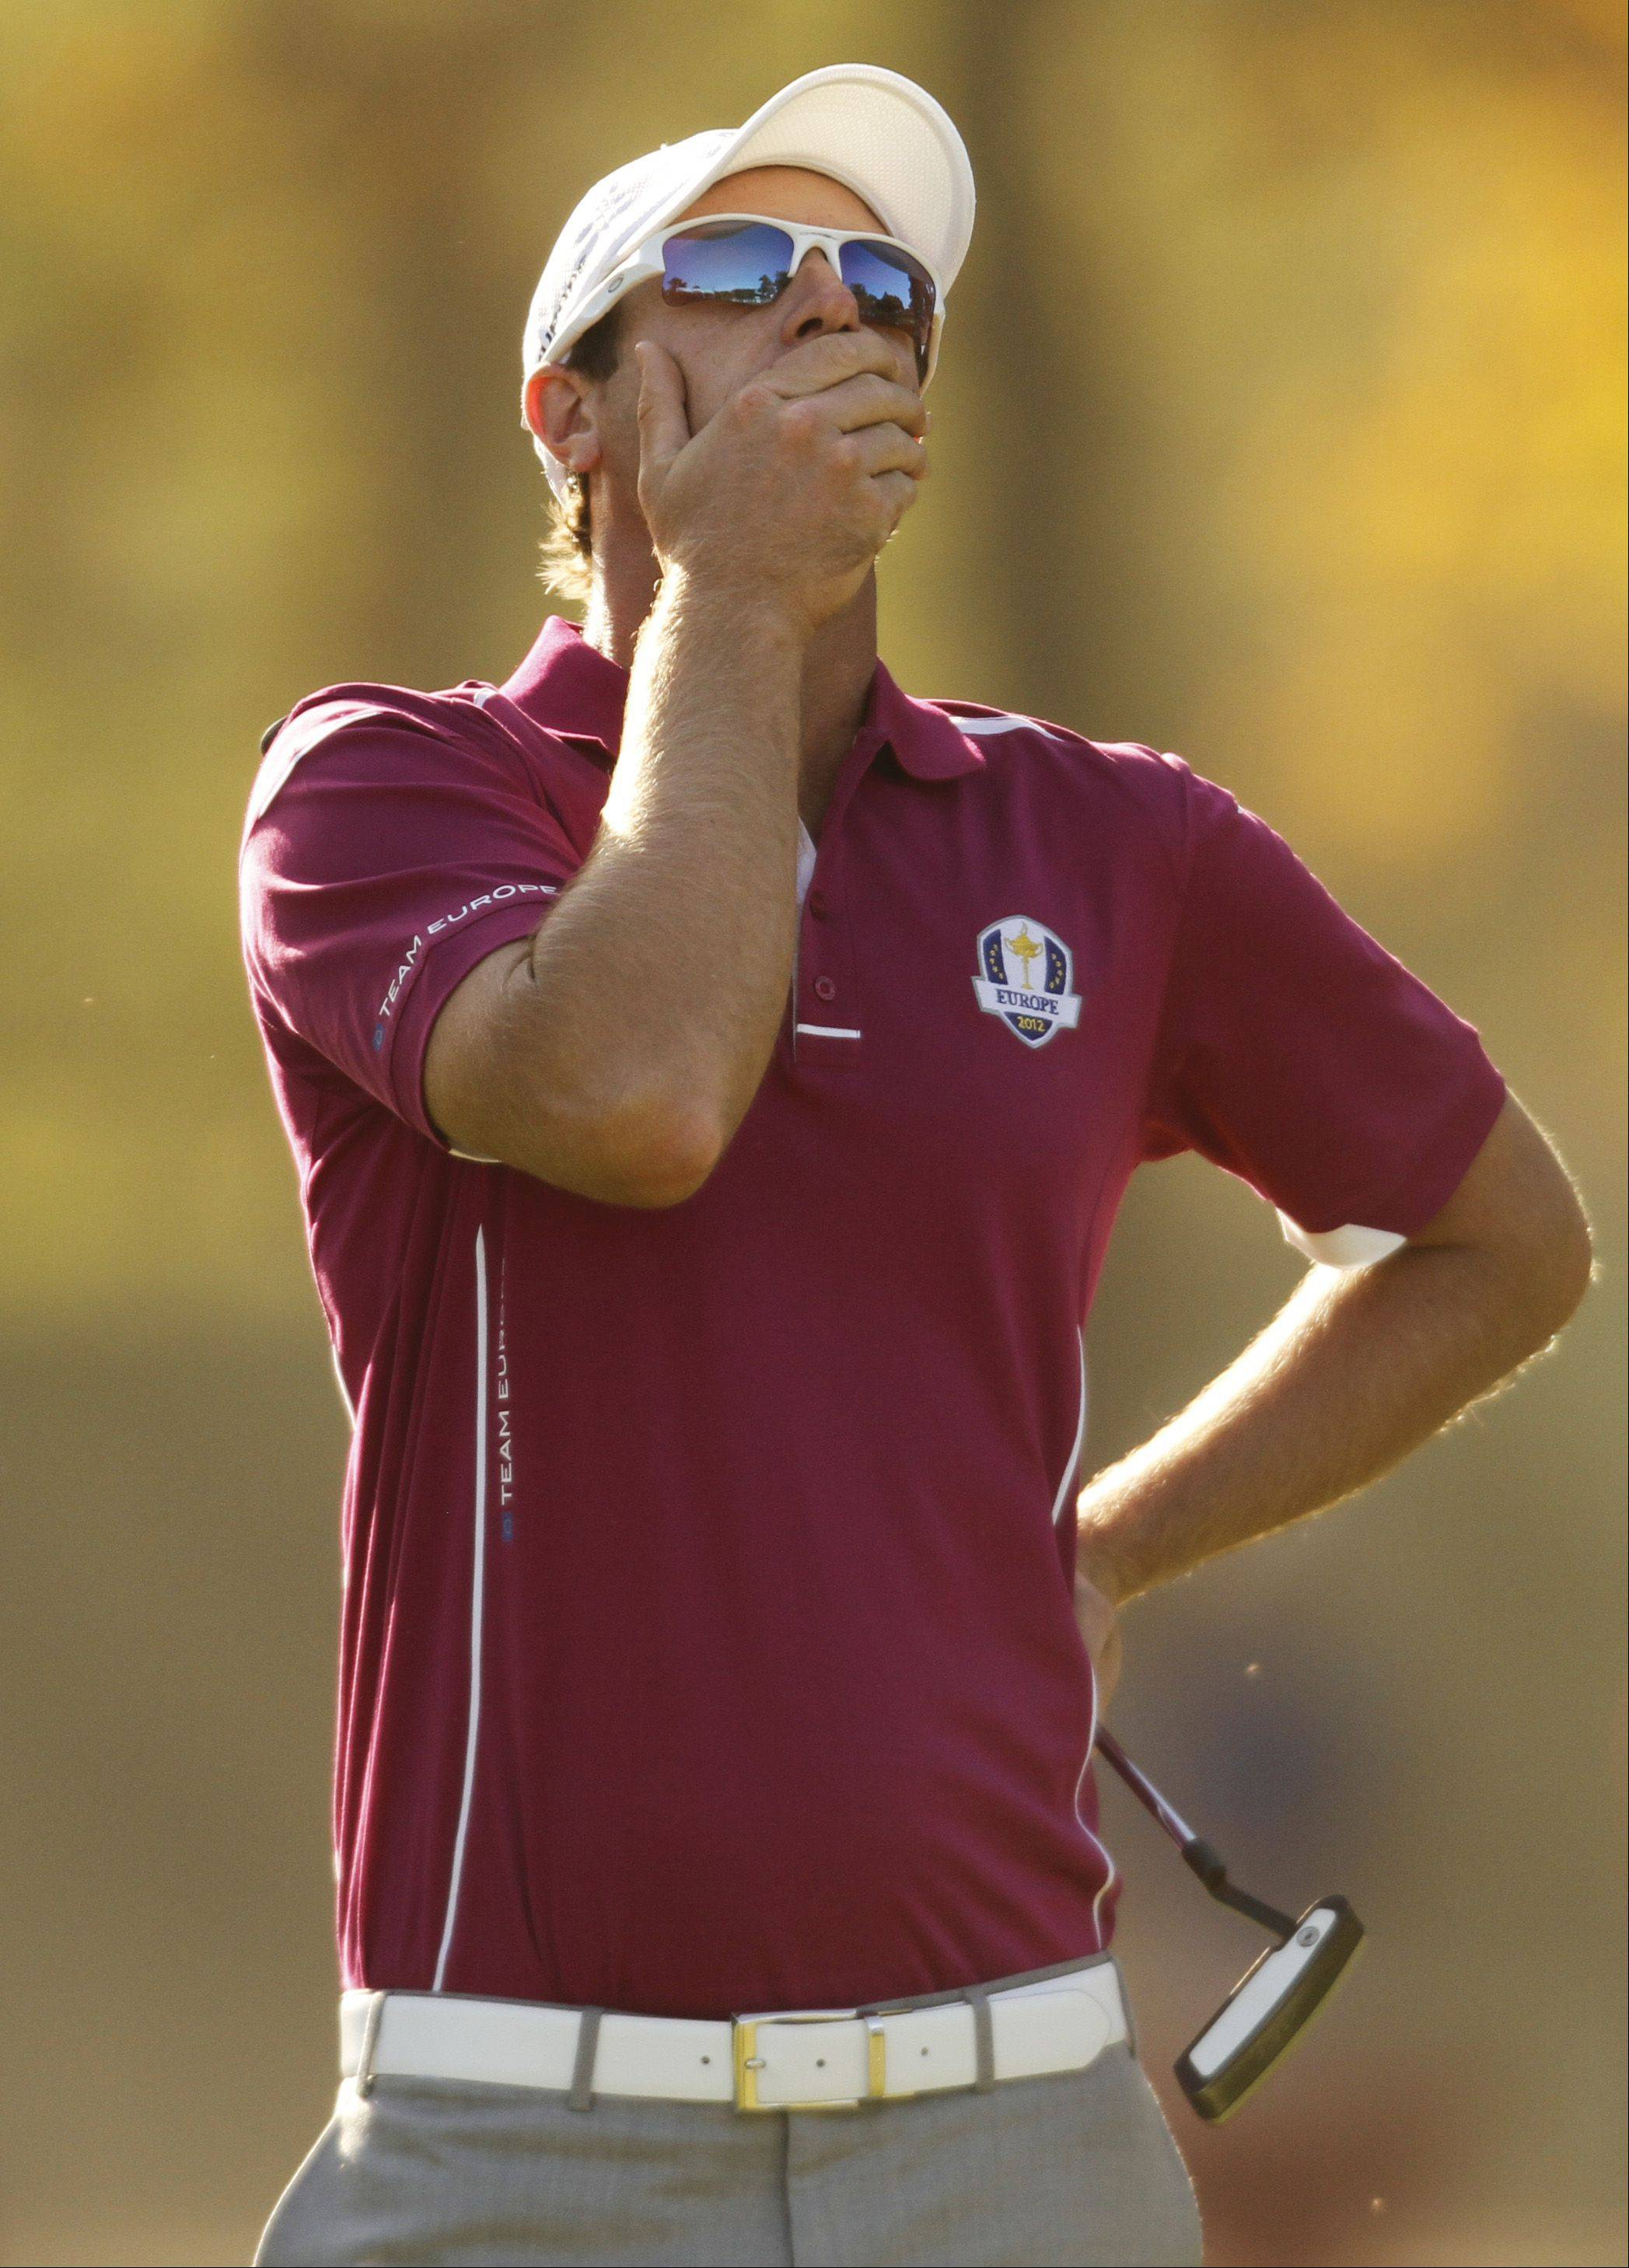 Team Europe's Nicolas Colsaerts is exasperated after a putt Saturday on #14.